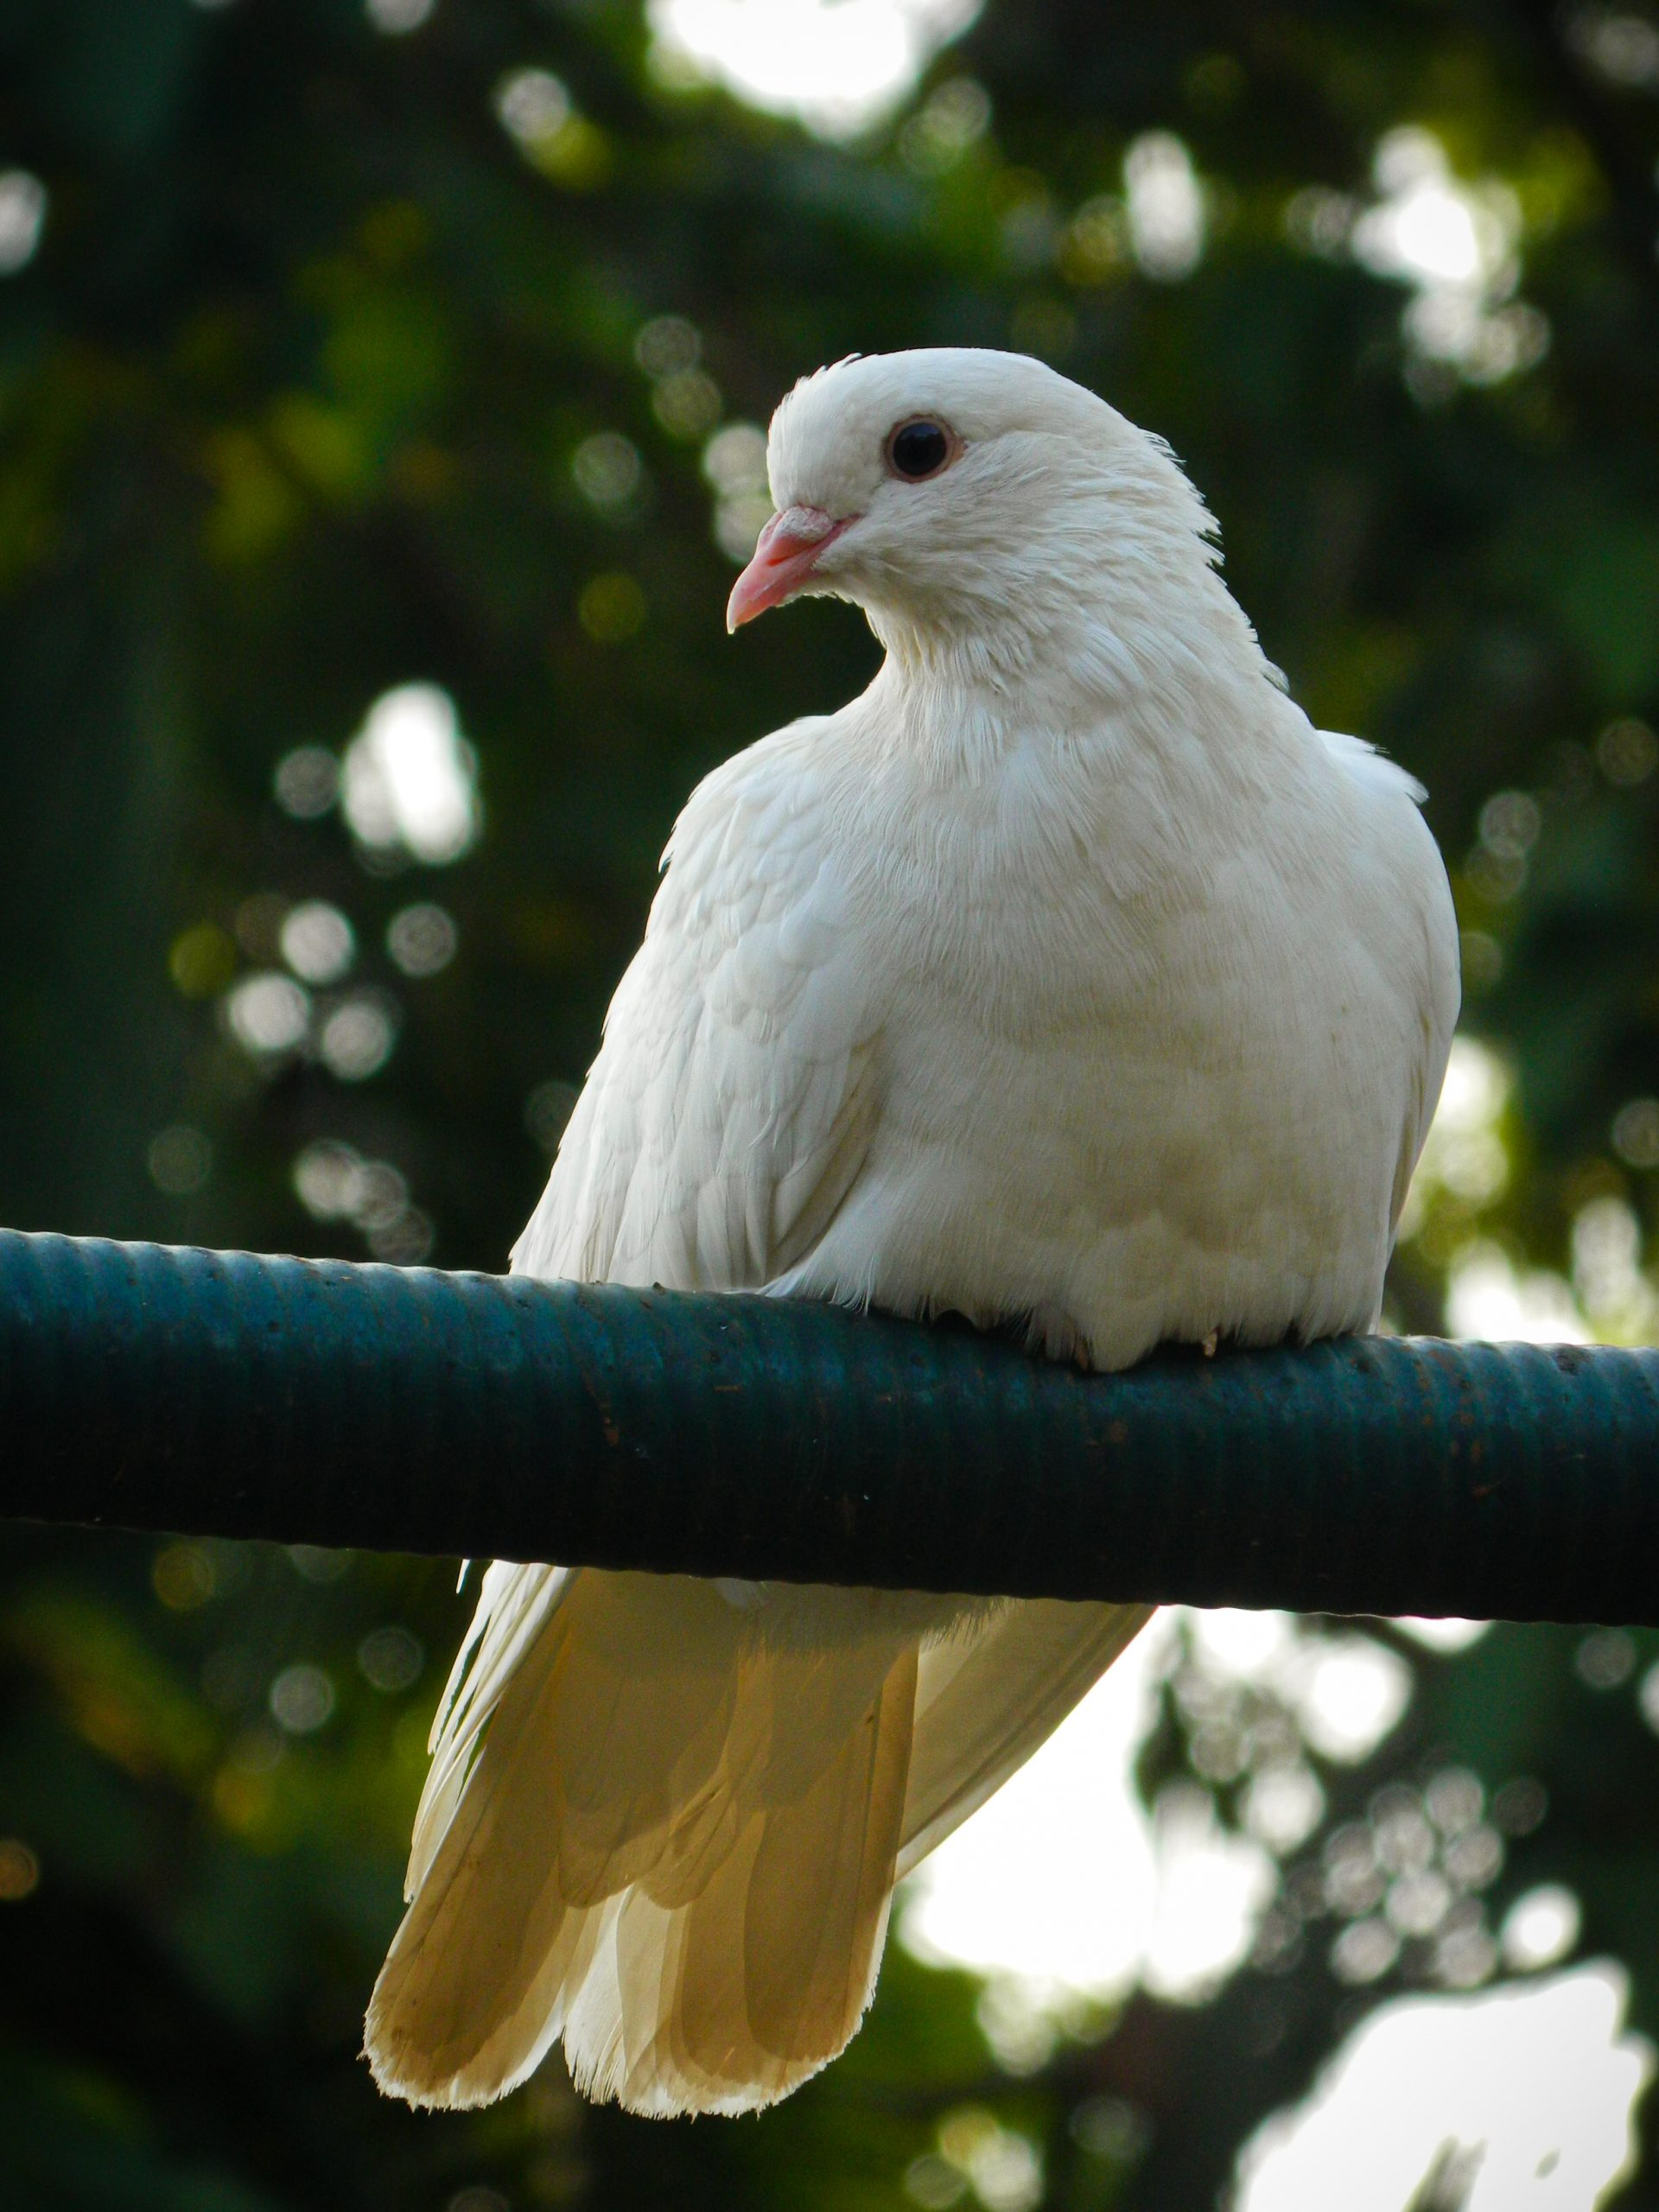 A pigeon sitting on a rope.